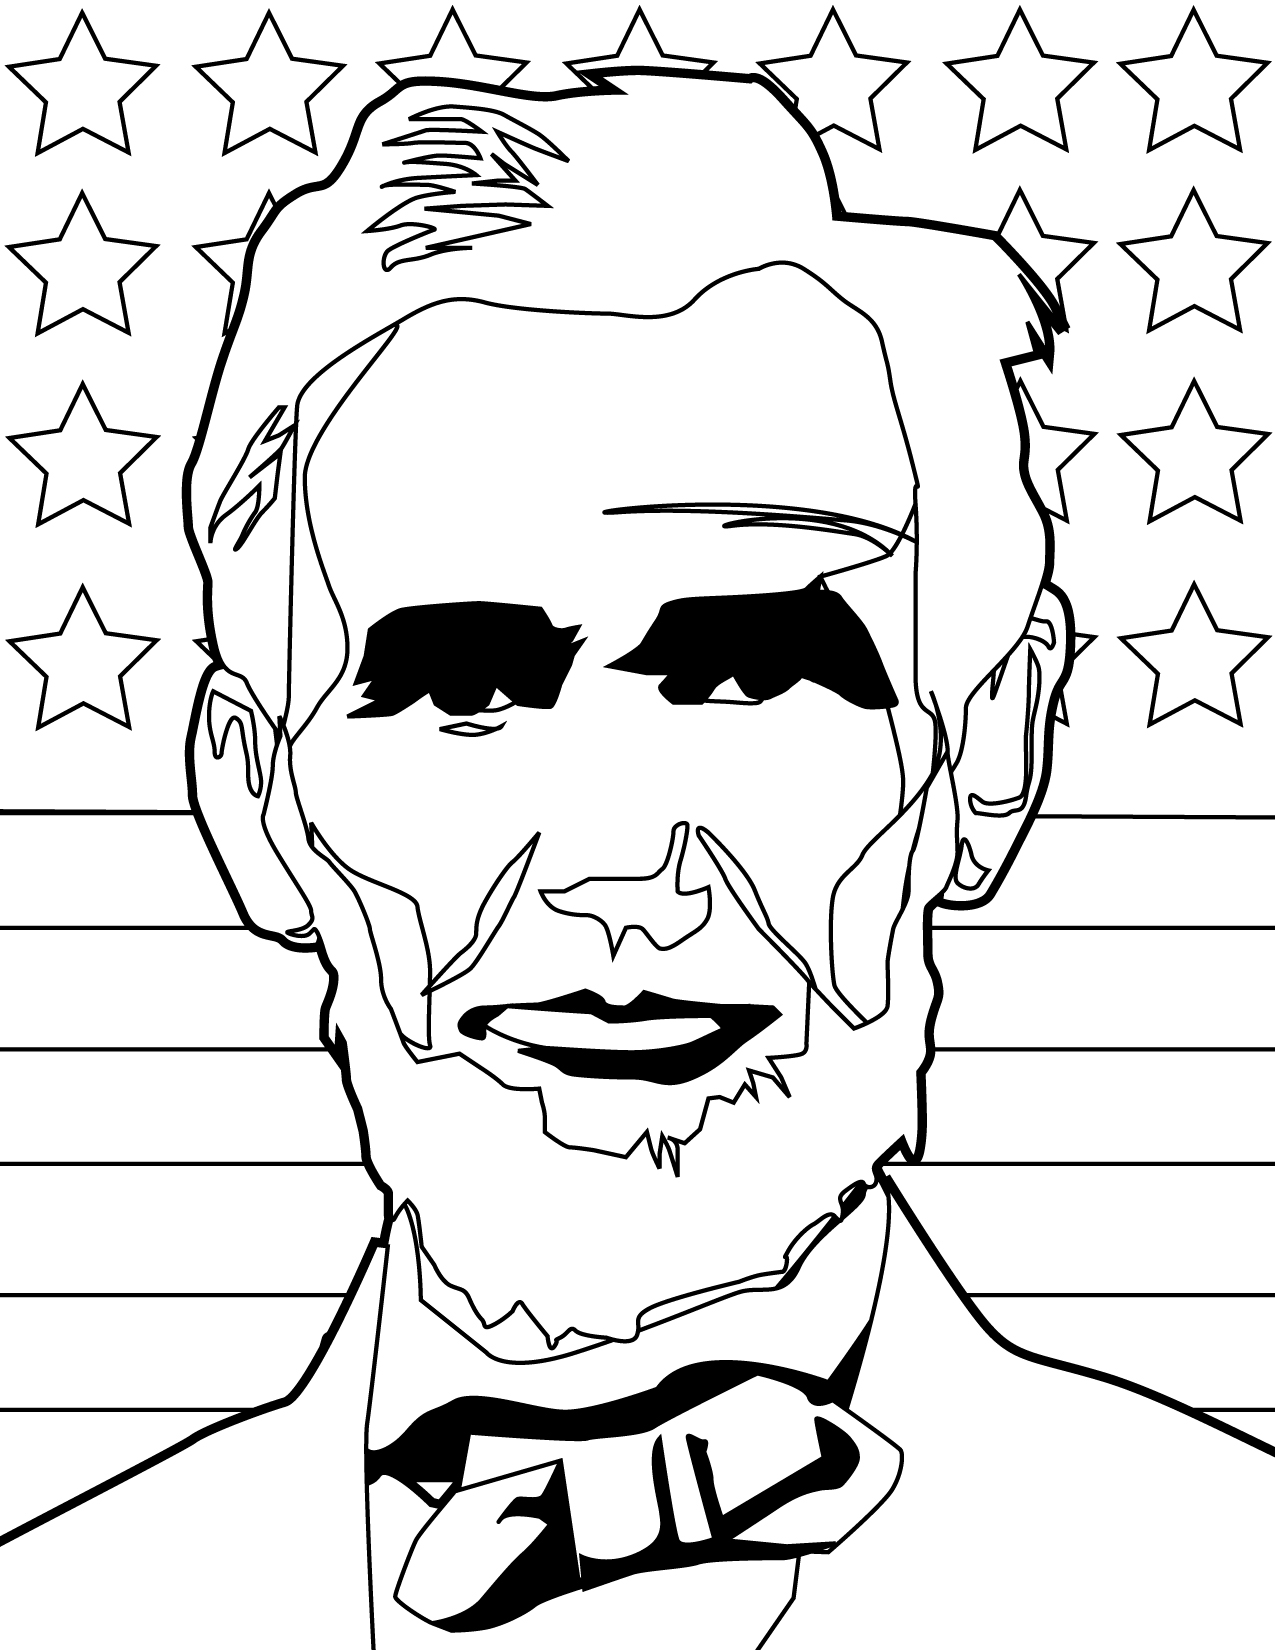 President Lincoln Coloring Pages At Getdrawings